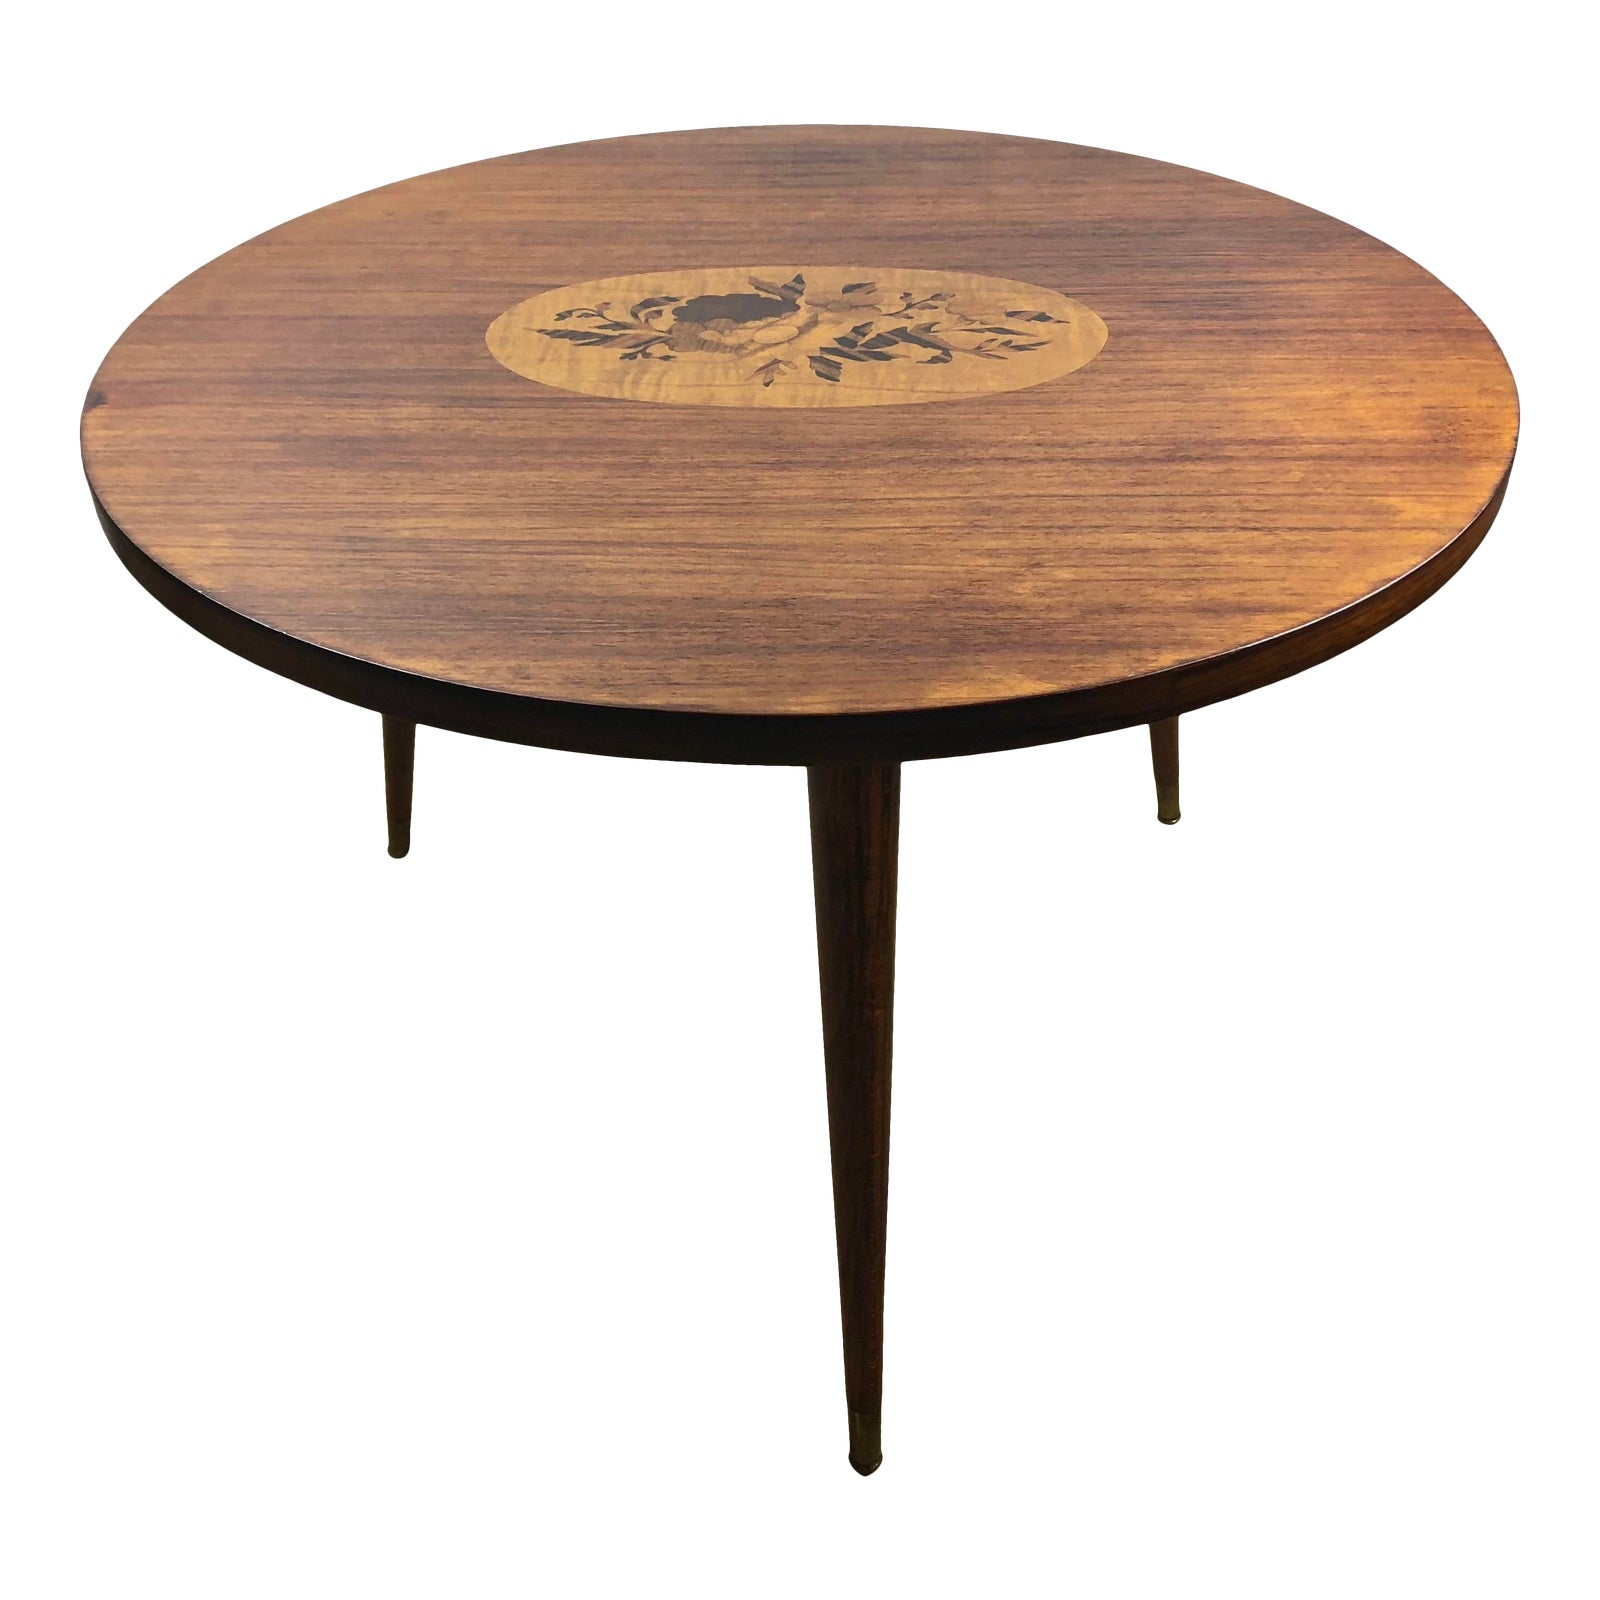 French Art Deco Style Round Wooden Coffee Or Side Table With Marquetry Center Chairish